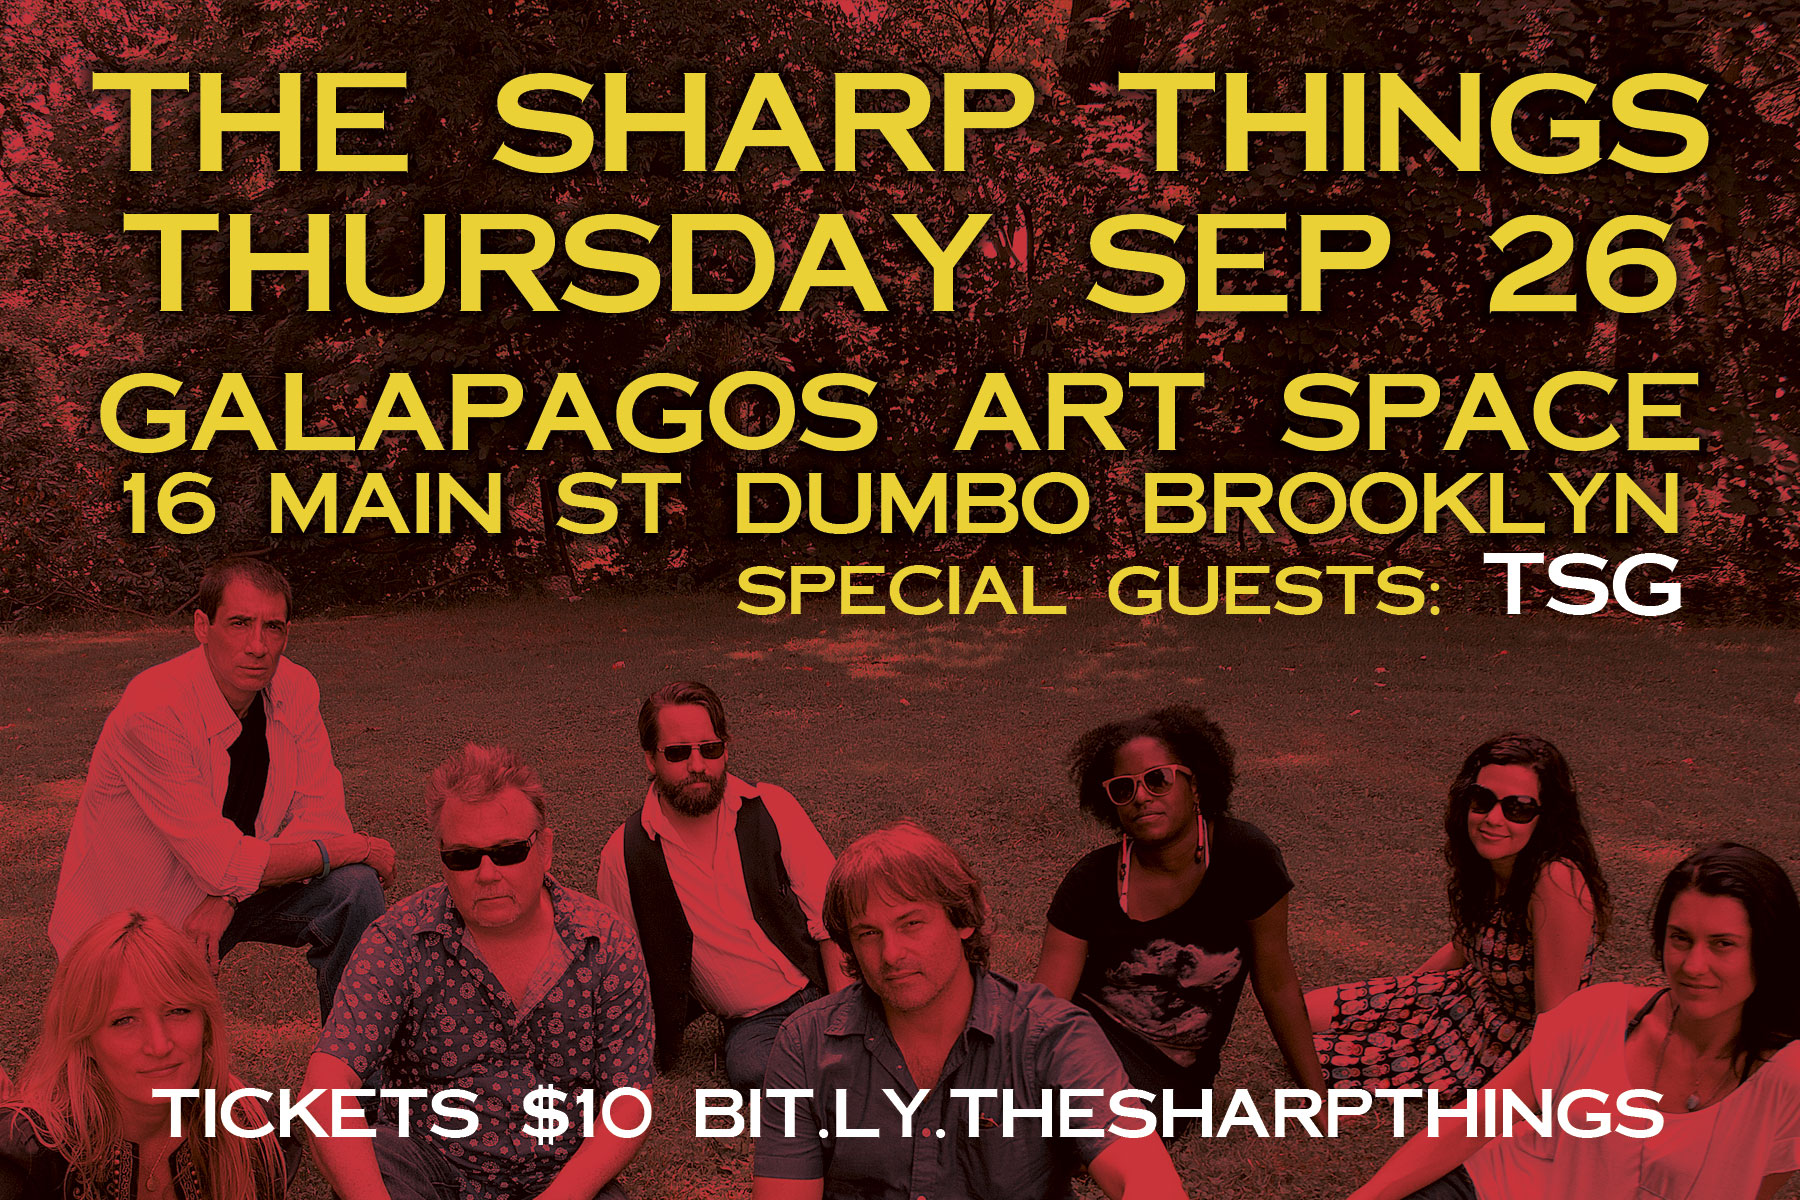 The Sharp Things Concert at Galapagos Art Space